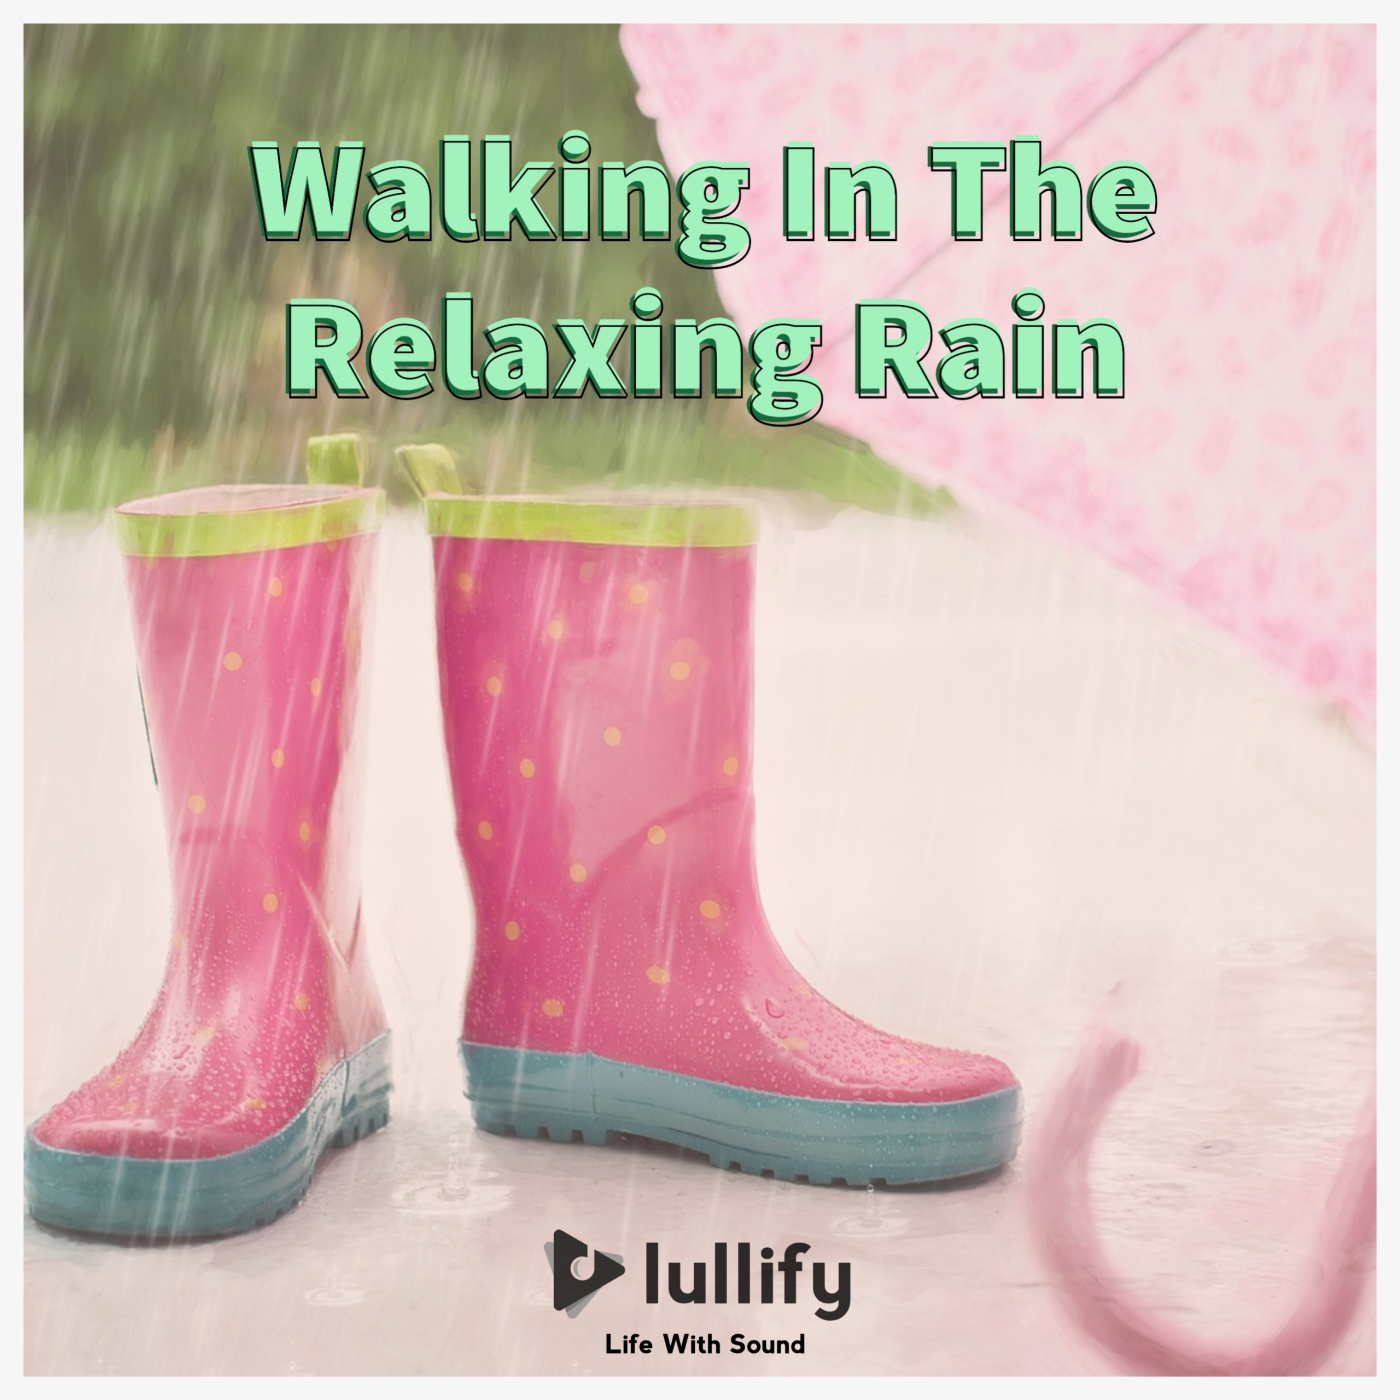 Walking In The Relaxing Rain